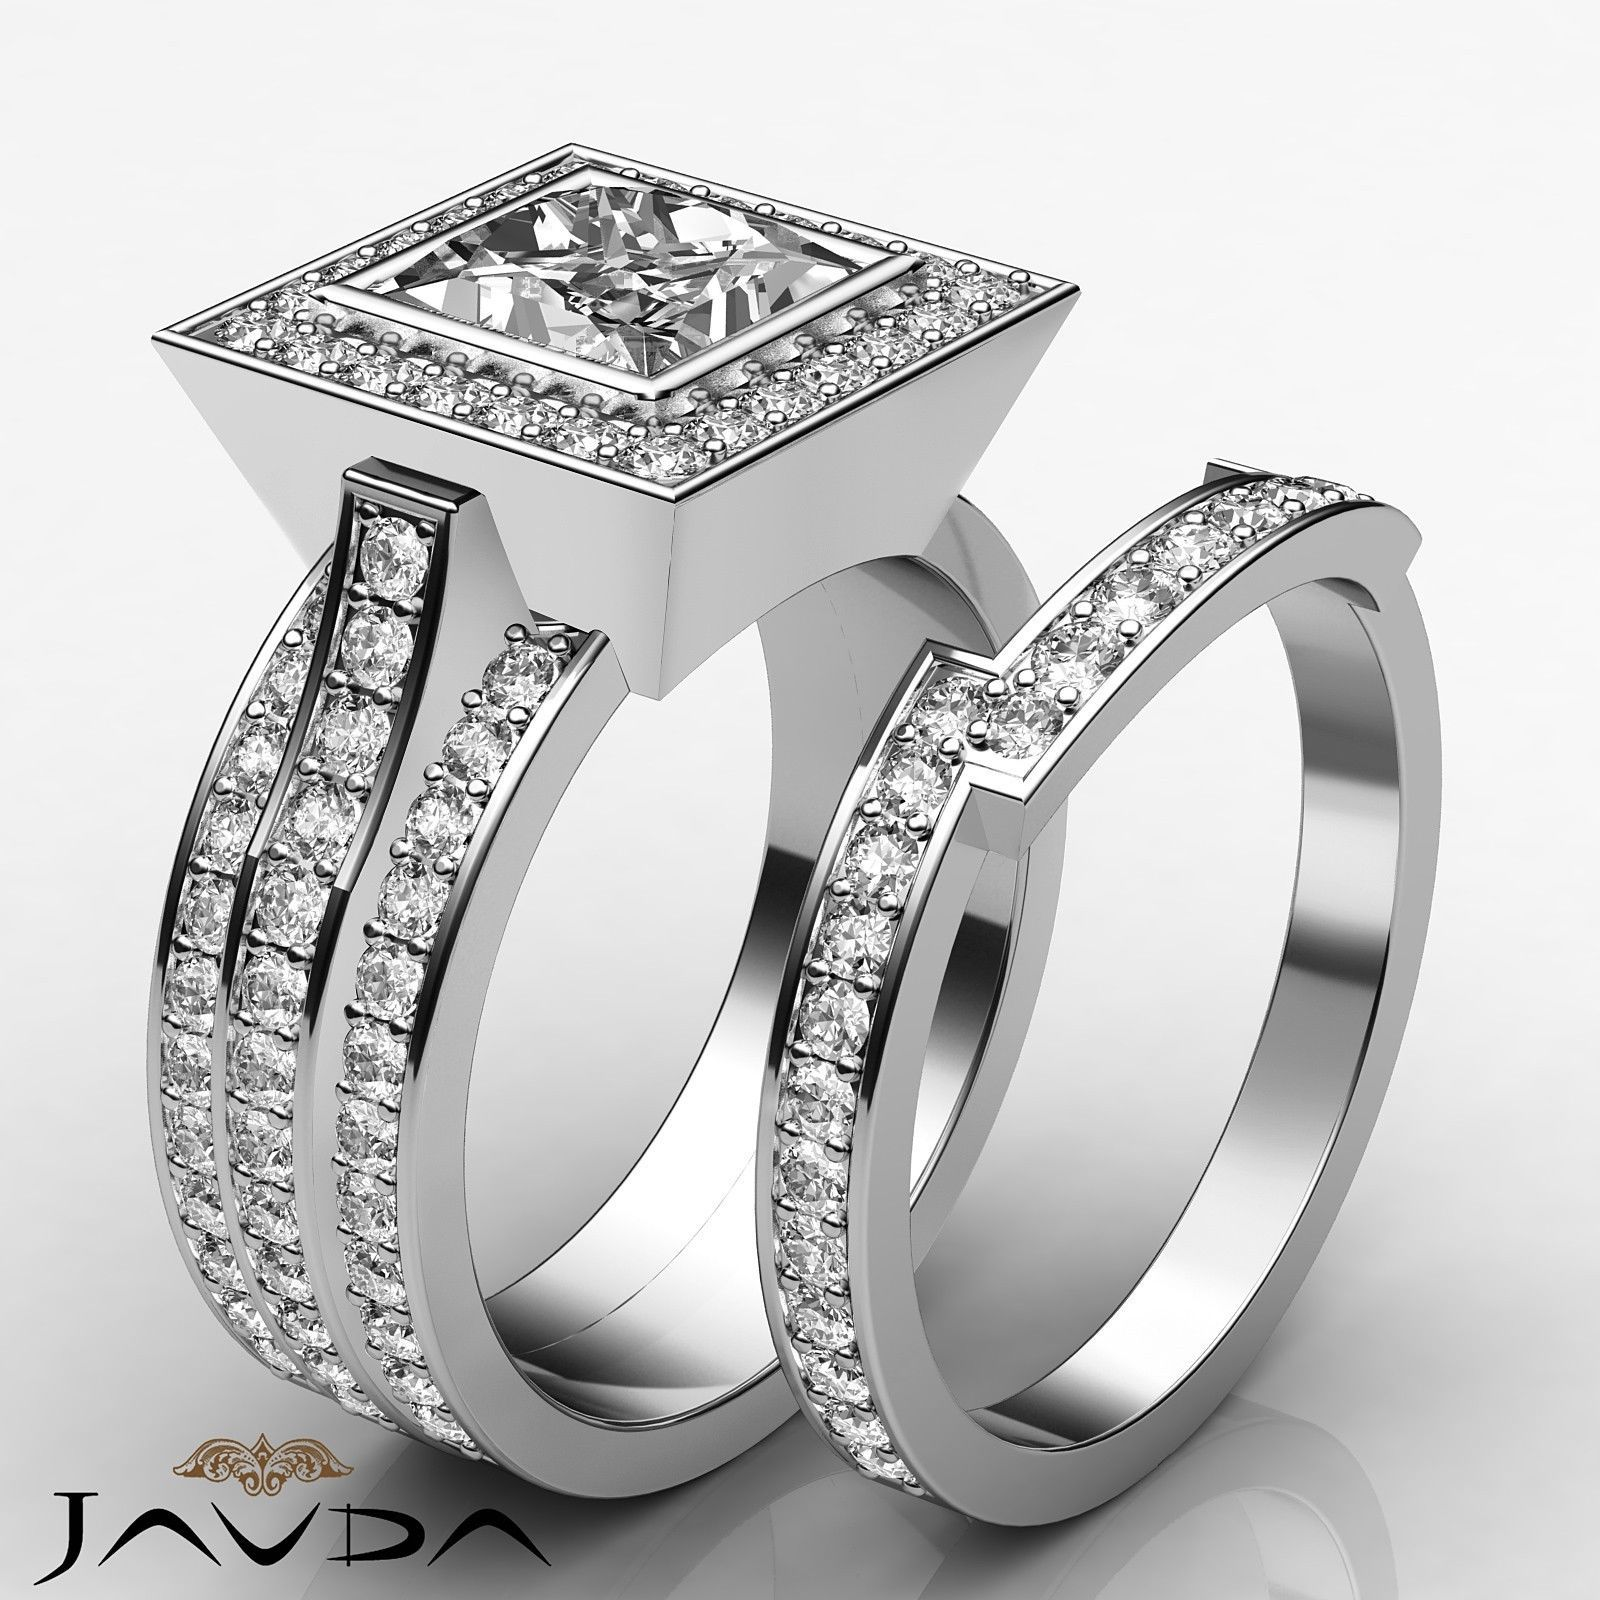 Princess diamond bridal set solid pave engagement ring gia g vs